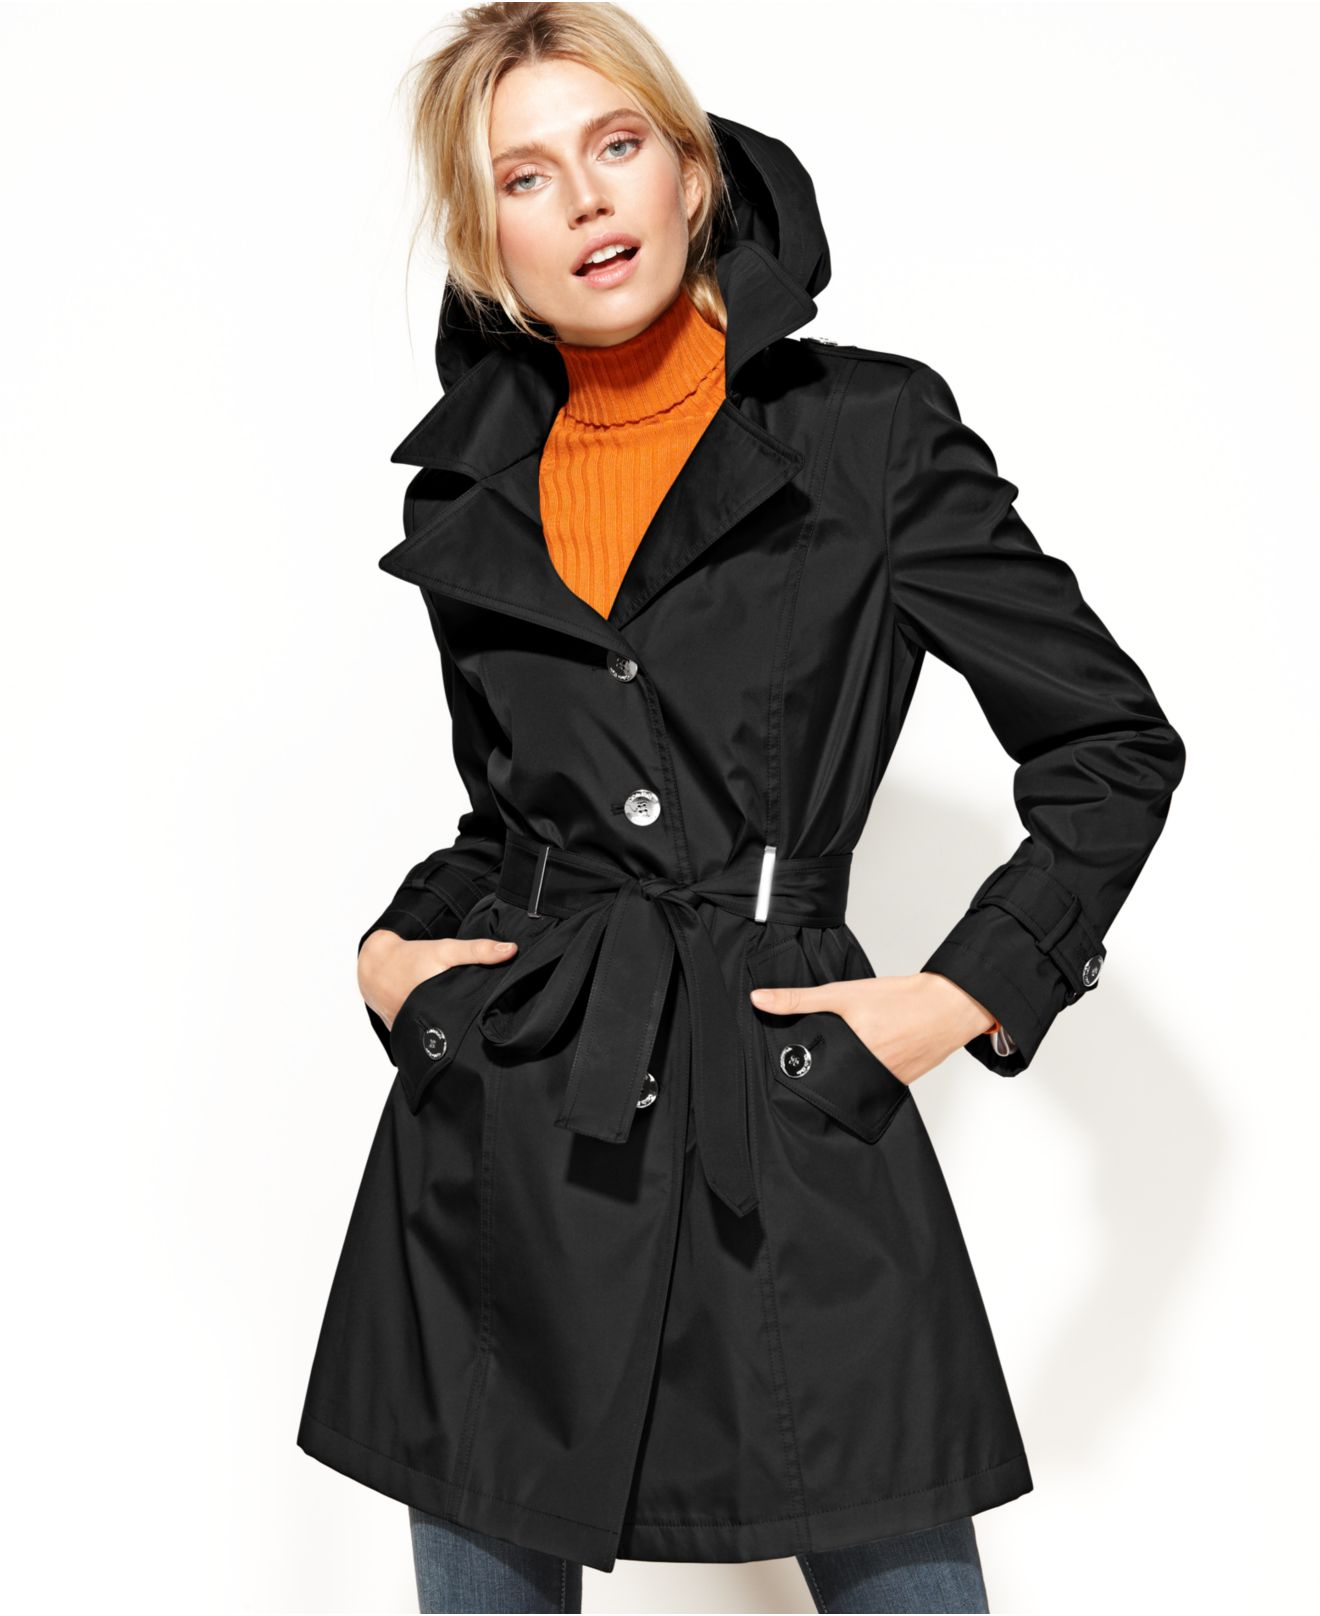 Calvin klein Petite Belted Trench Coat in Black | Lyst